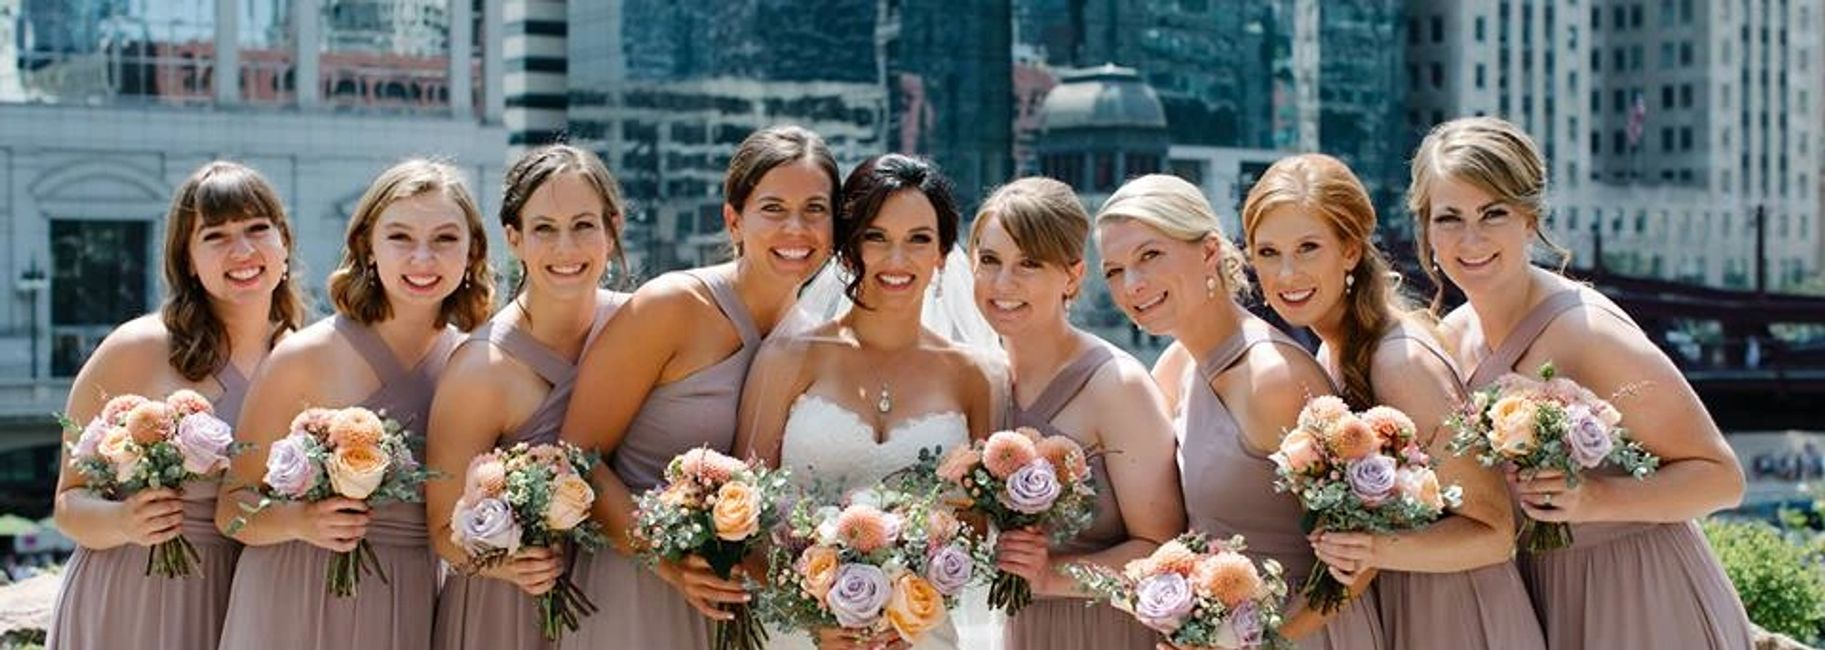 Chicago Wedding Party Picture with flowers